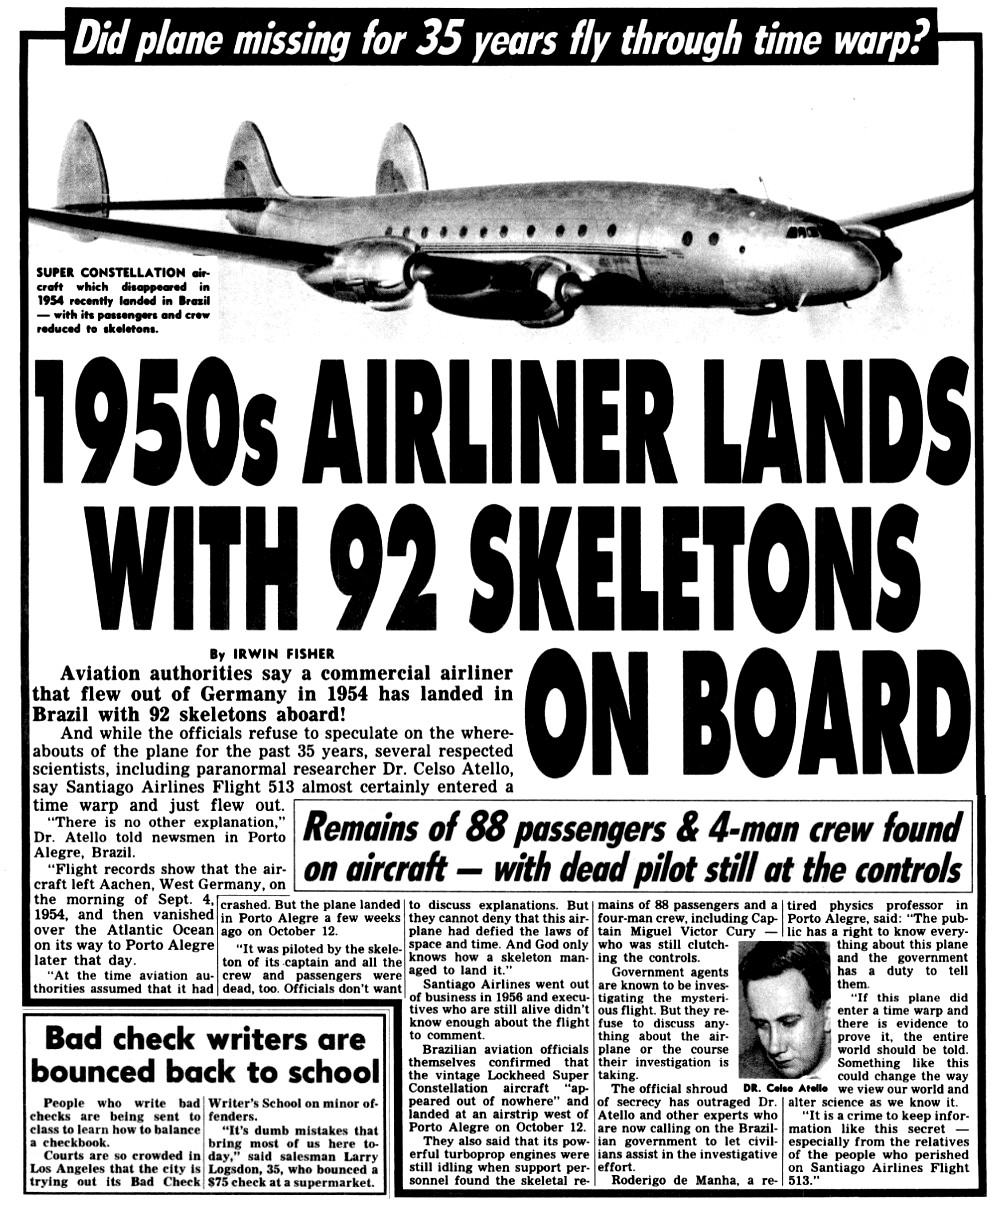 missing-santiago-flight-513-lands-92-skeletons